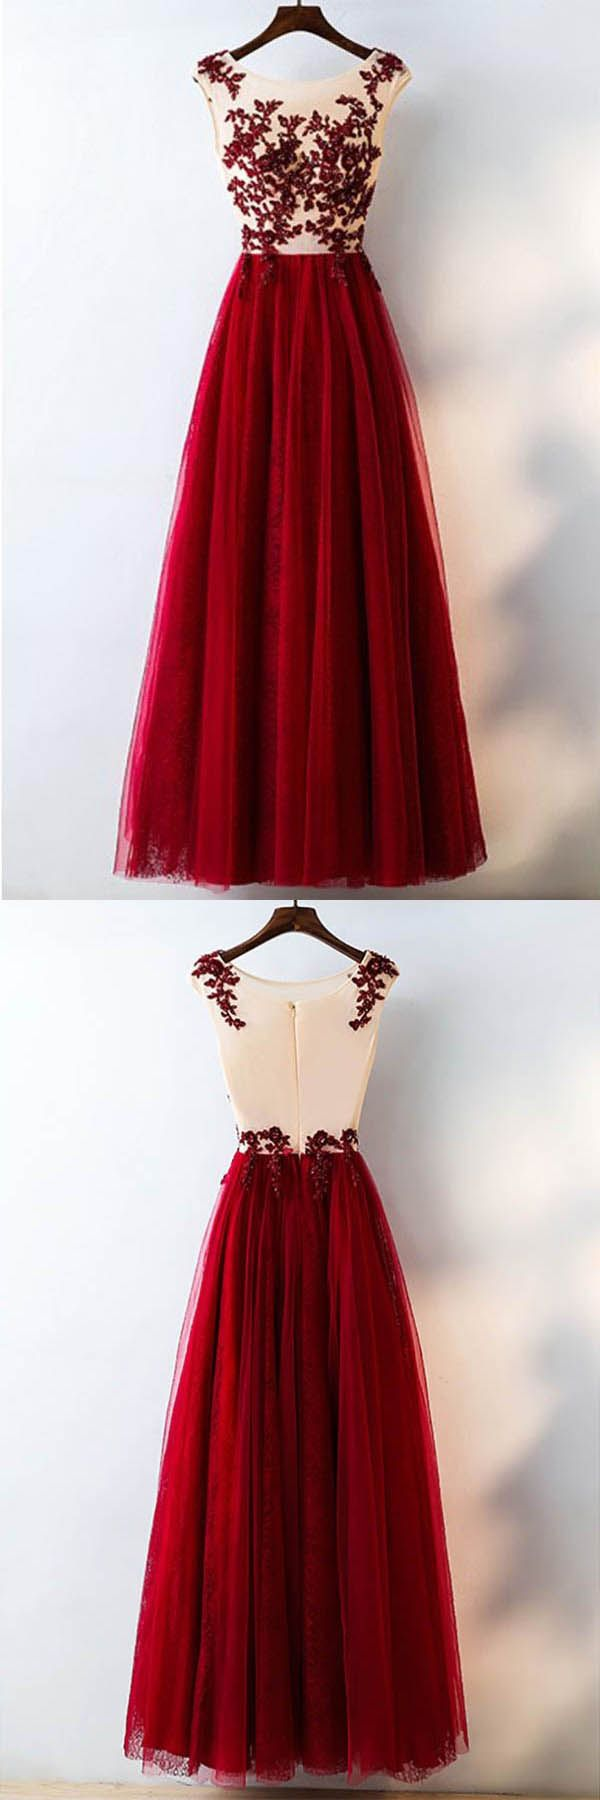 Formal red sequined tulle prom dress long with lace pg in